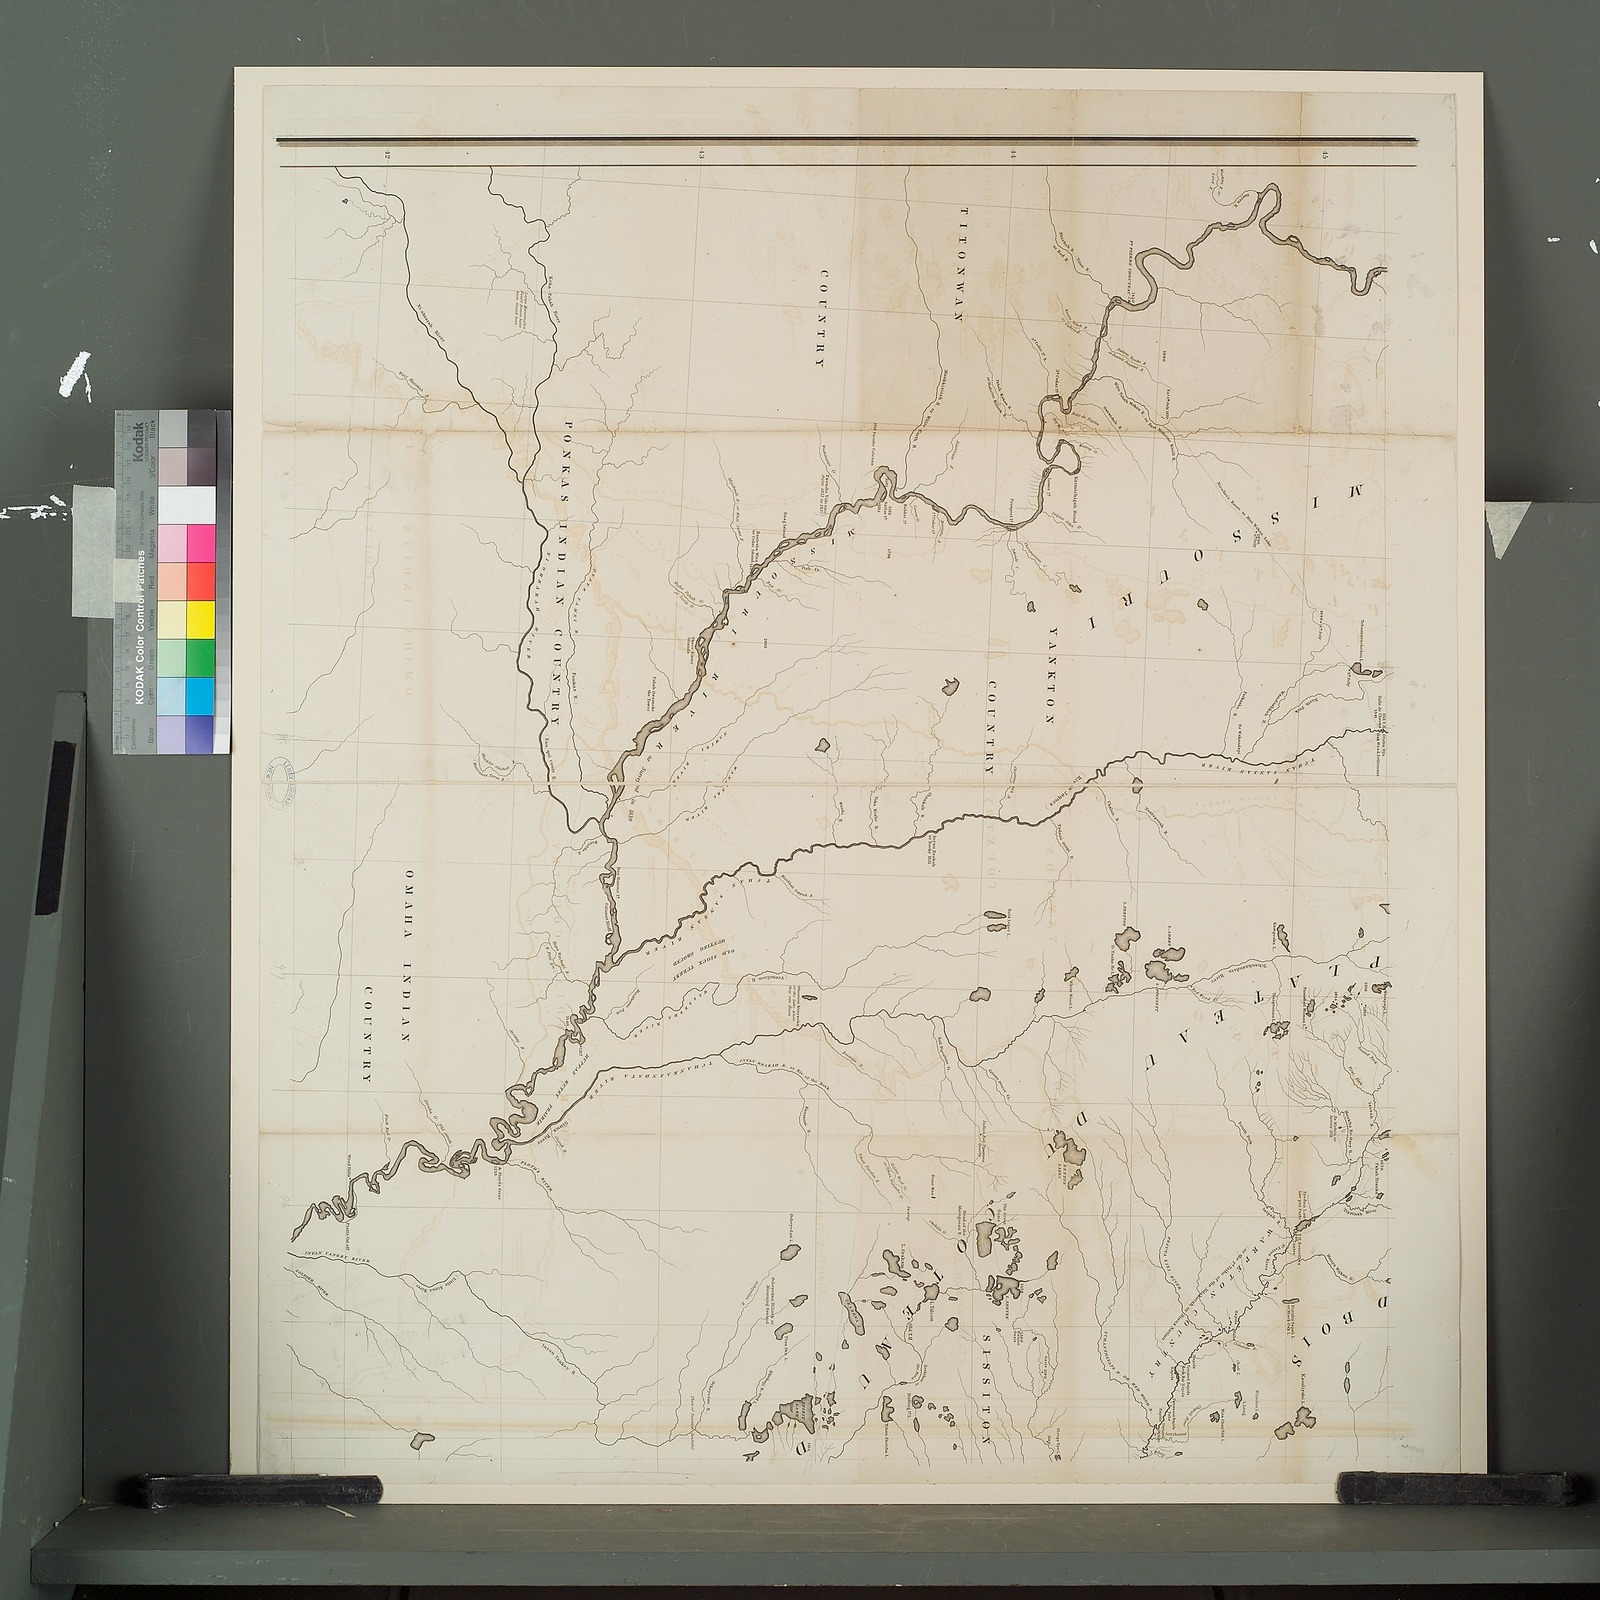 [Titonwan country, Ponkas Indian country, Omaha Indian country, Yankton, country; middle left].